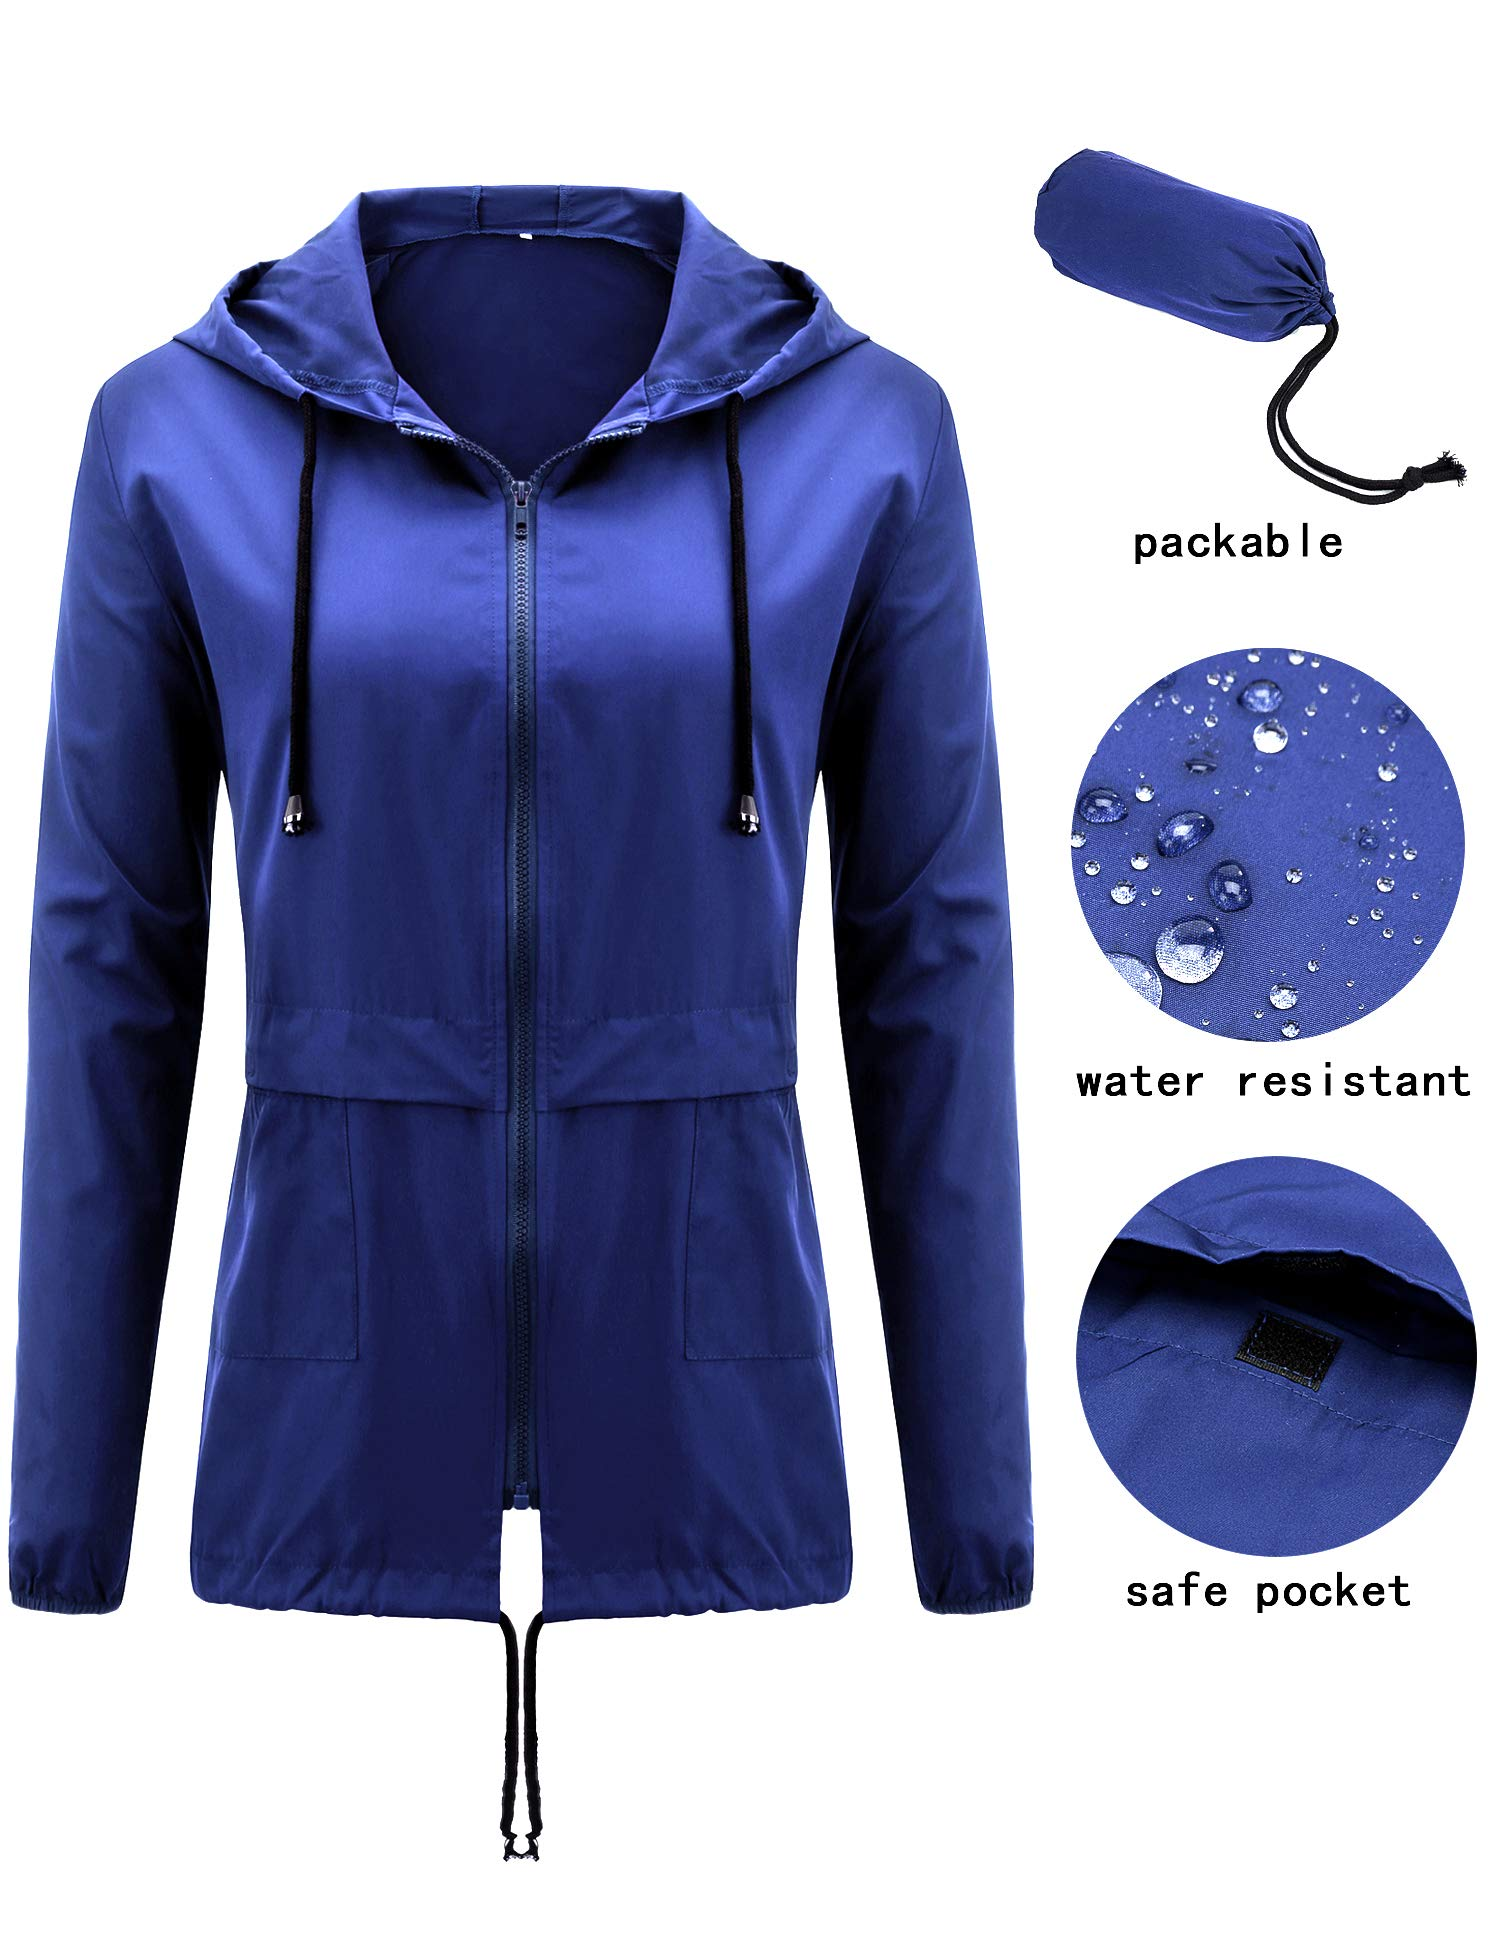 Uniboutique Womens Outdoor Raincoat Waterproof Lightweight Rain Jacket with Hood Royal Blue S